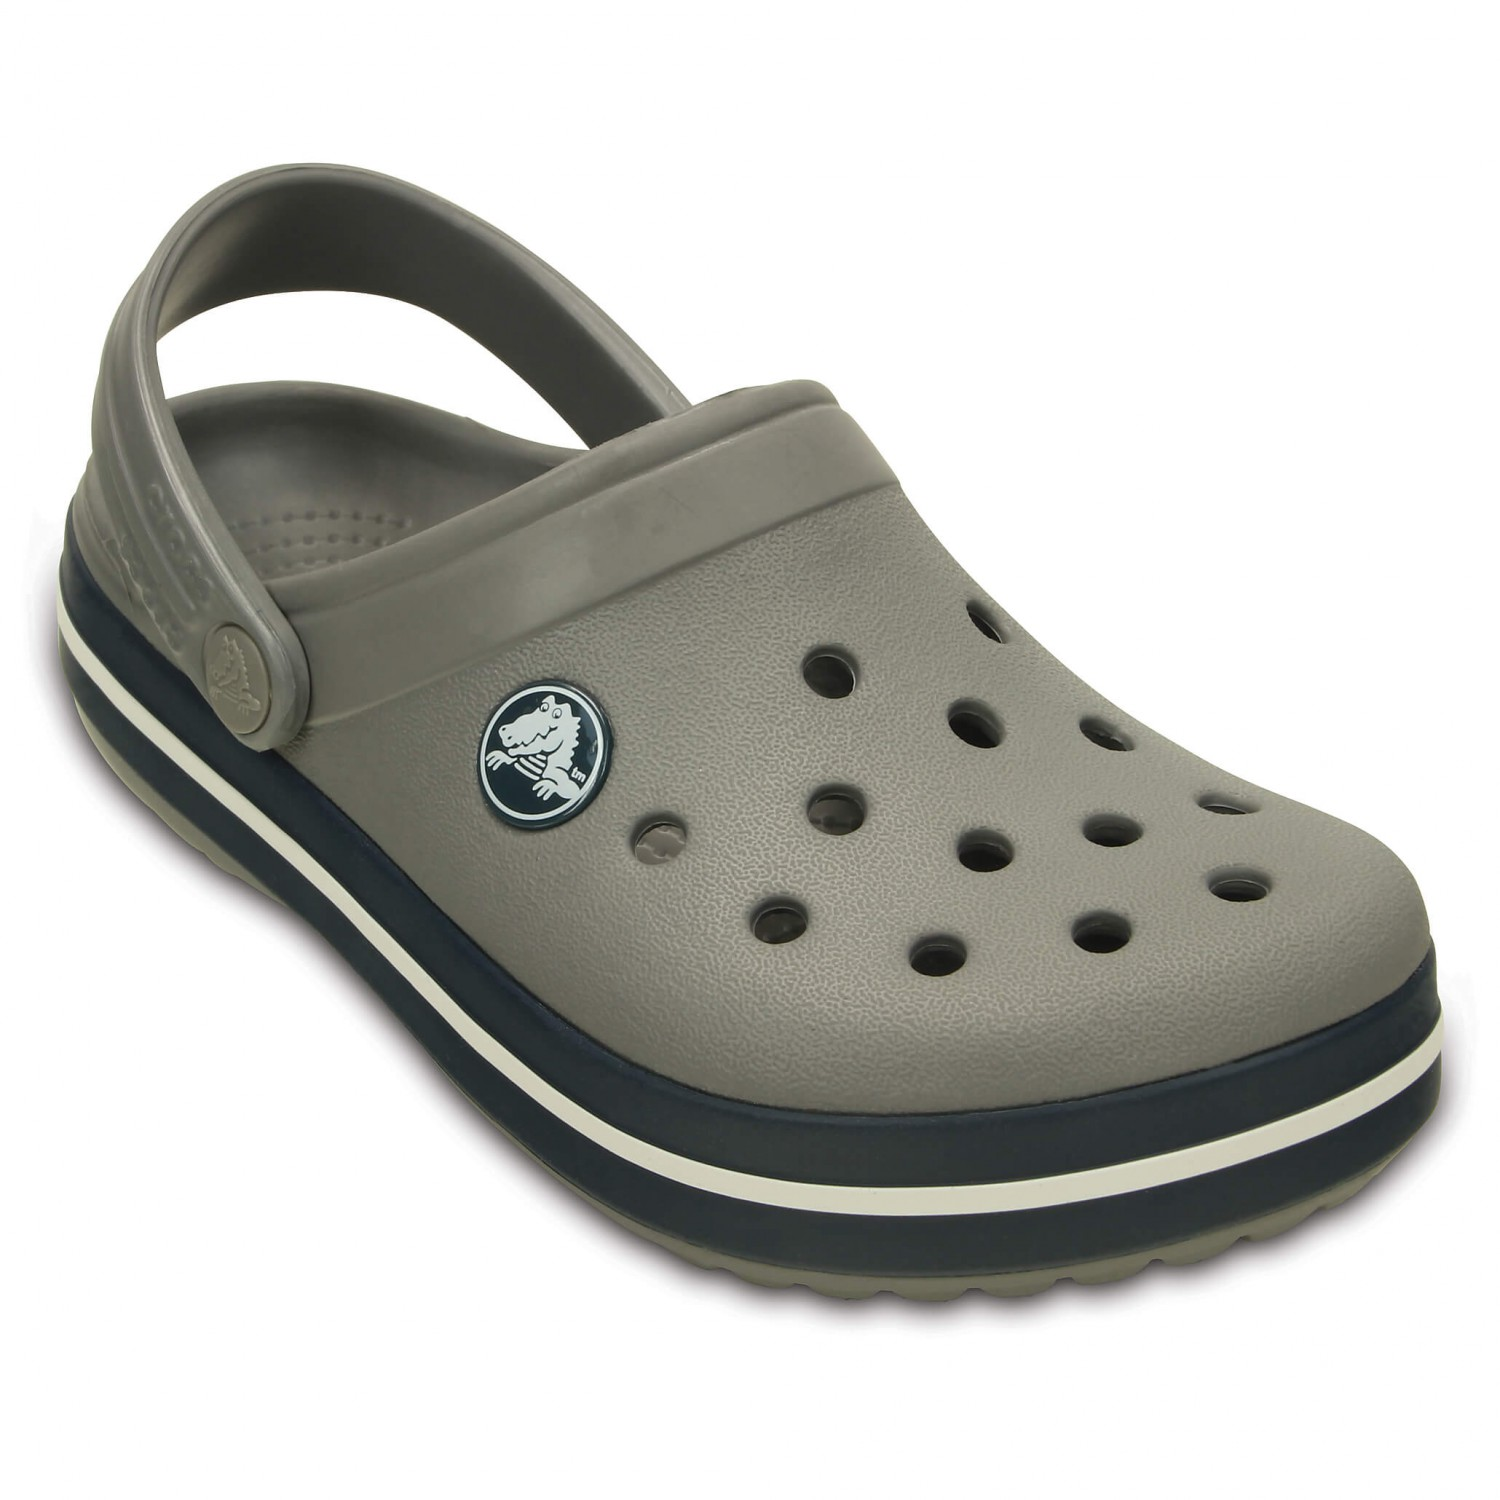 Buy Crocs Kids Shoes online in India. Huge selection of Crocs Kids Shoes at viplikecuatoi.ml All India FREE Shipping. Cash on Delivery available.